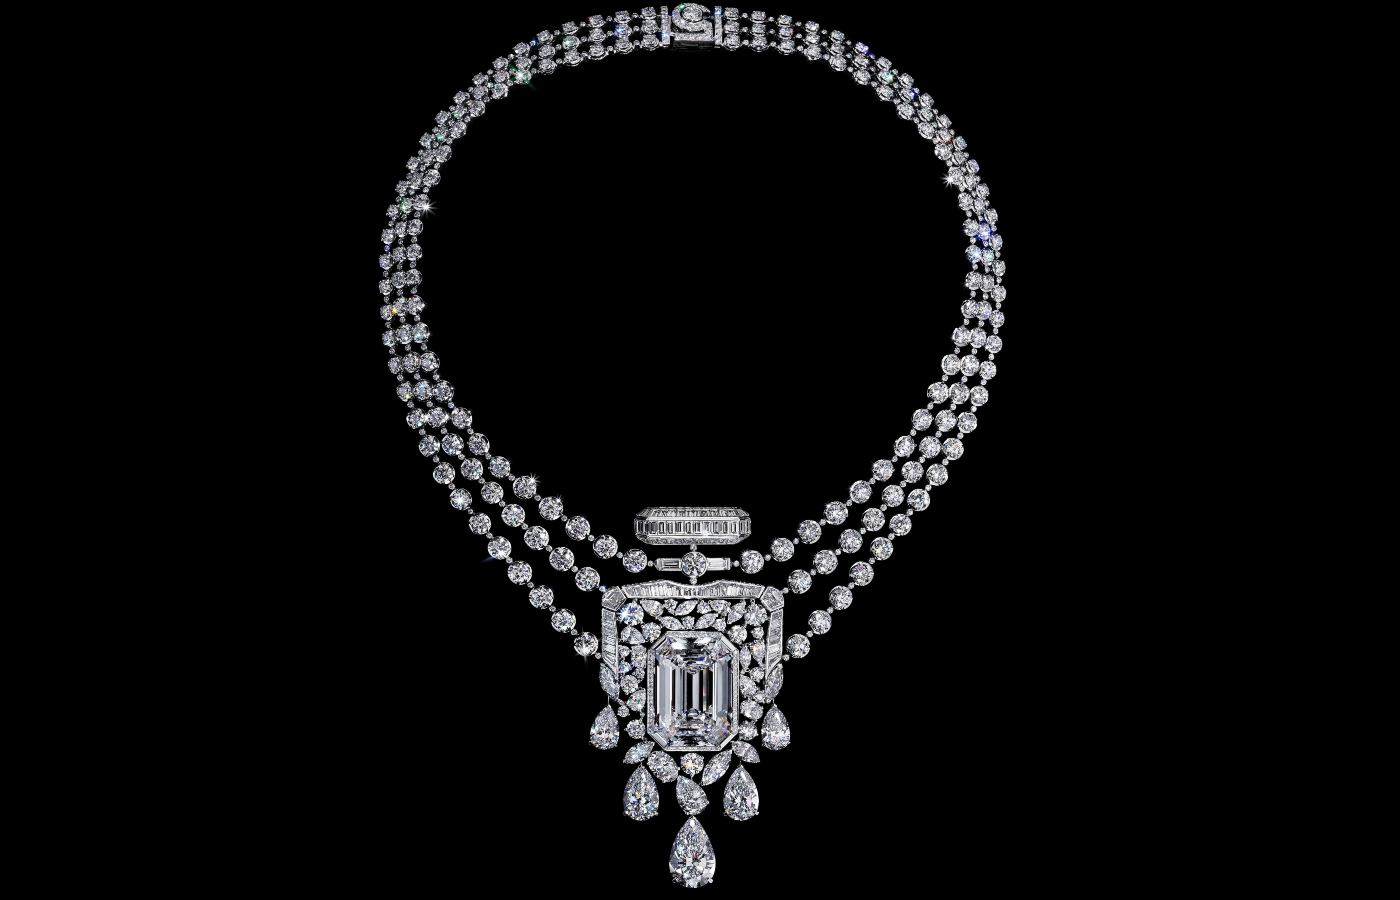 Chanel 55.55 necklace